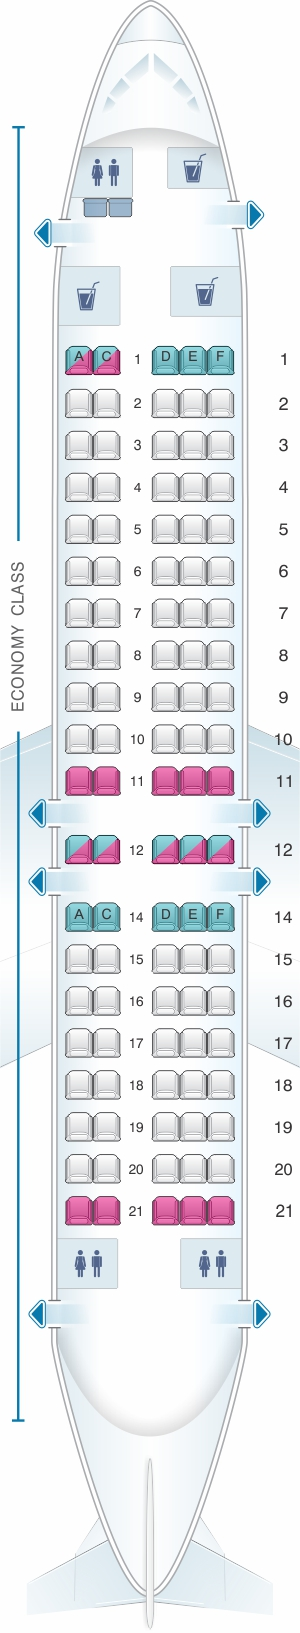 Seat map for QantasLink Fokker 100